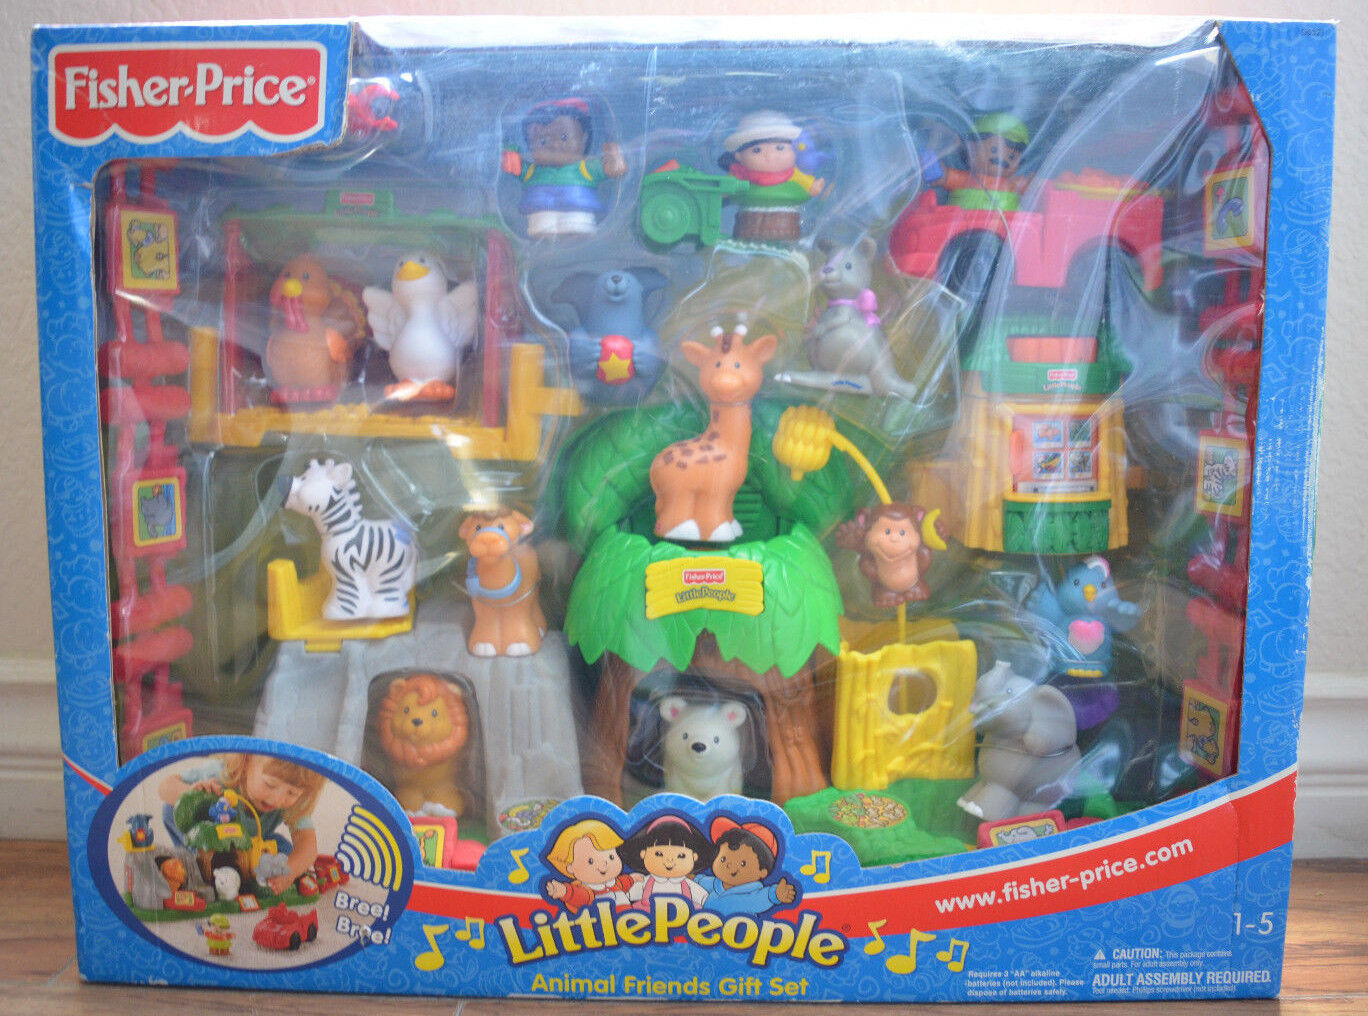 Fisher Price Price Price Little People Animal Friends Gift Set 3b8778